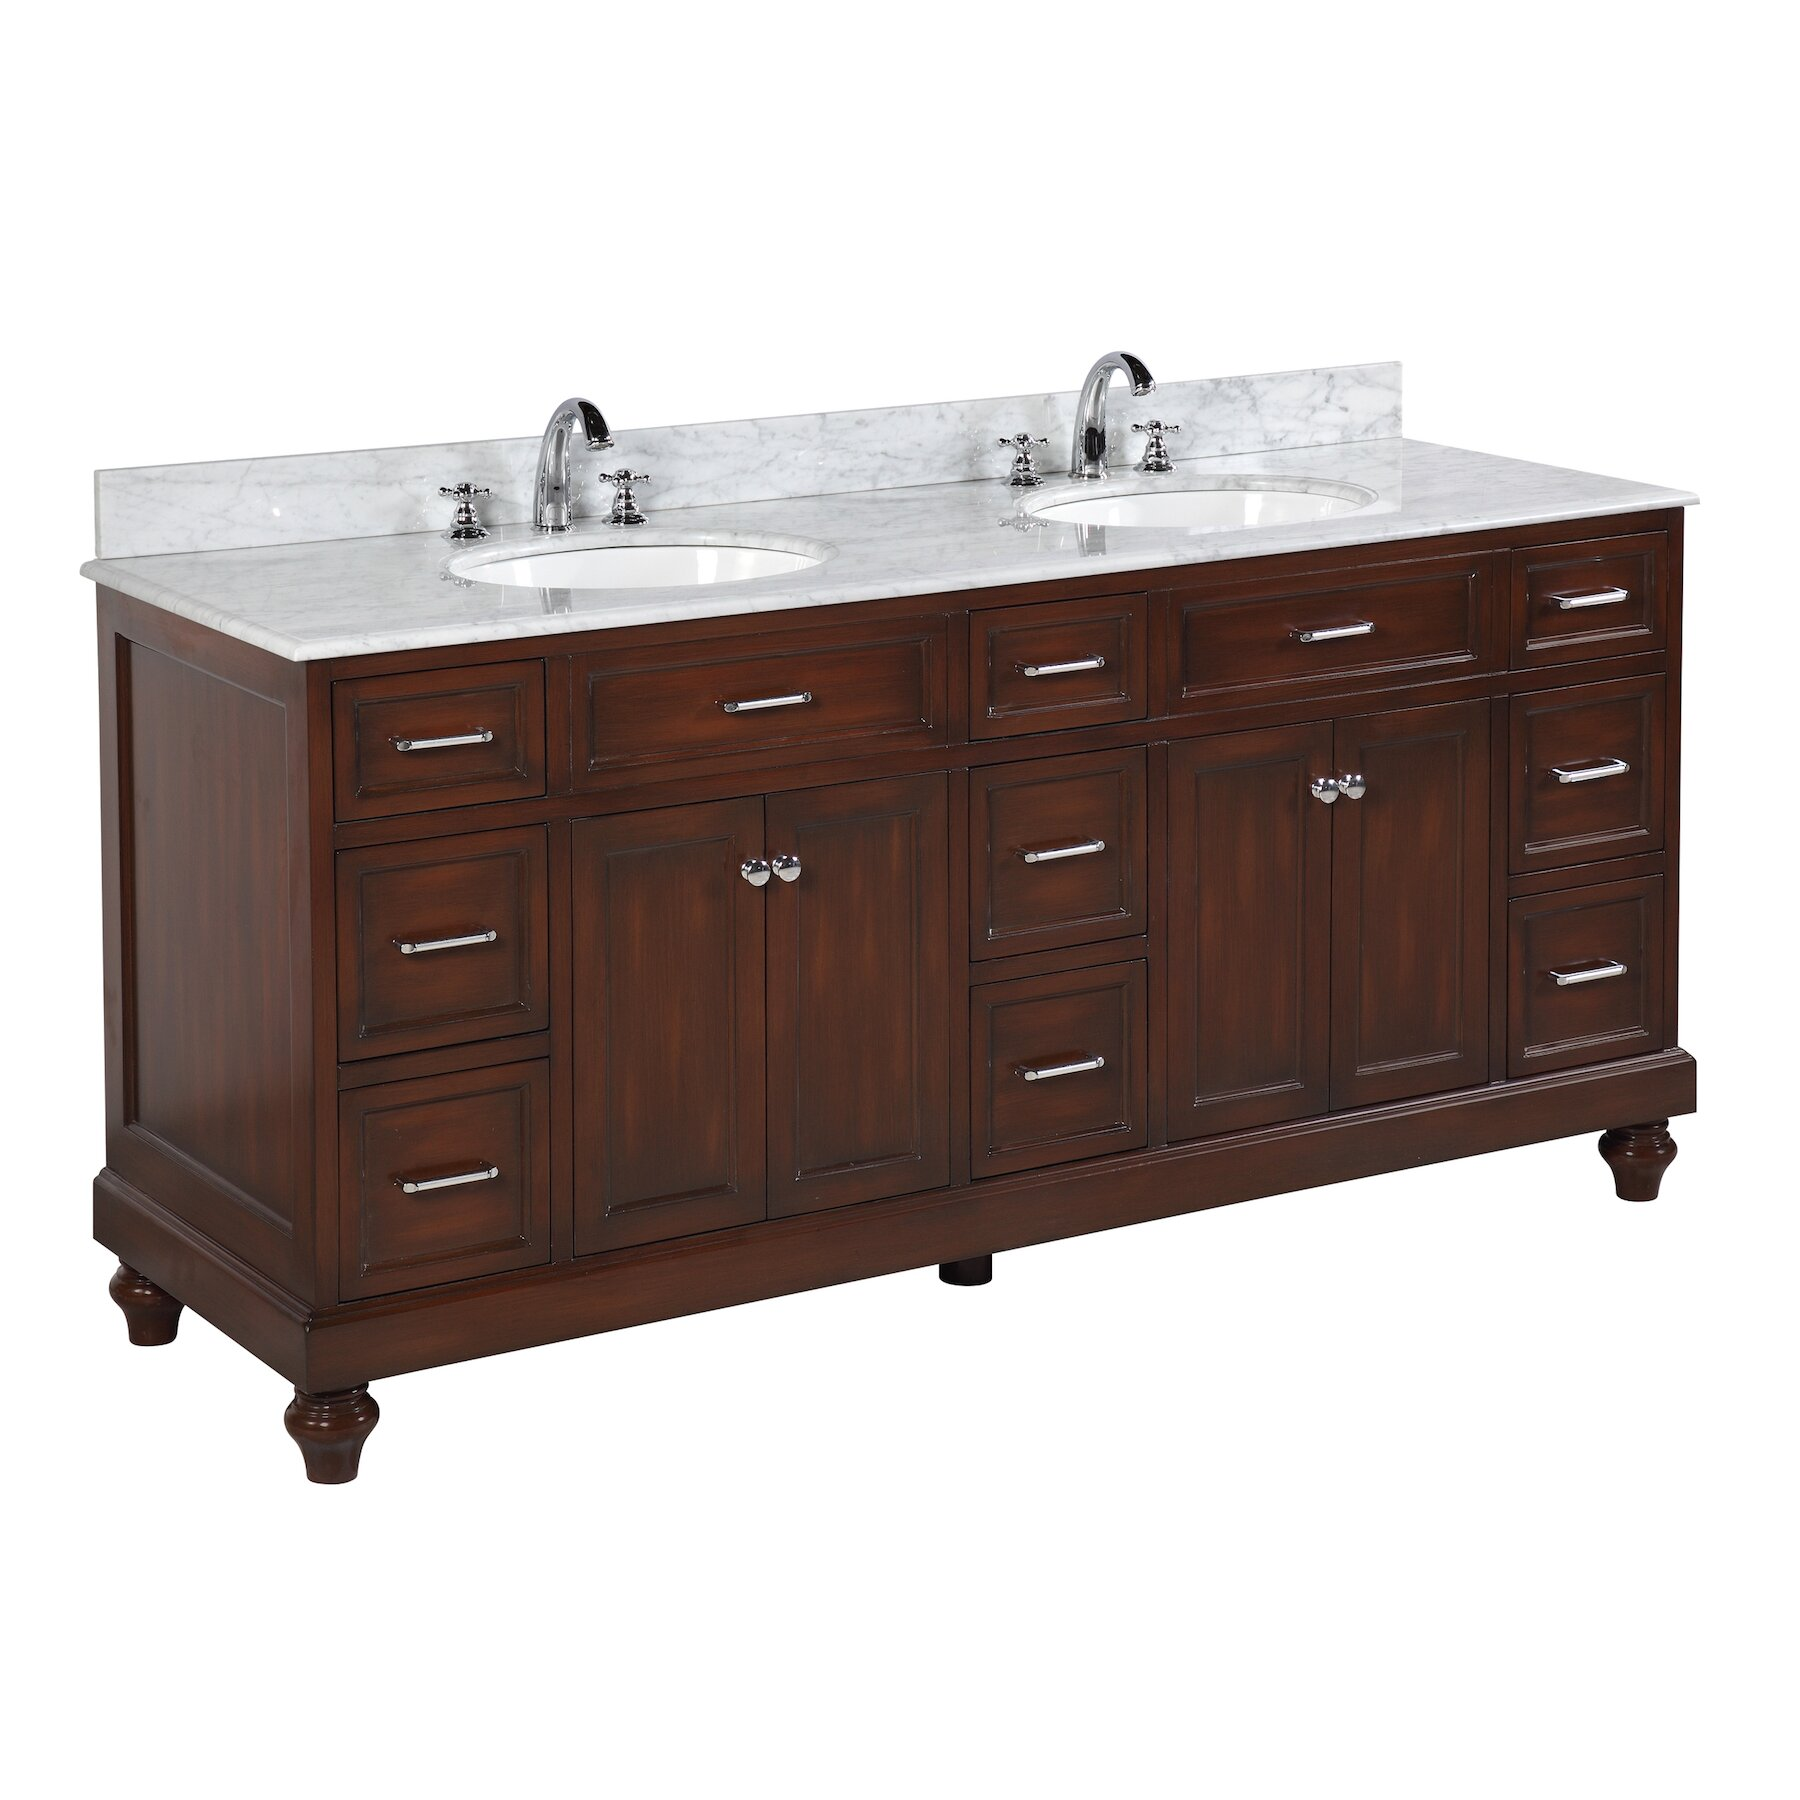 Kbc Amelia 72 Double Bathroom Vanity Set Reviews Wayfair